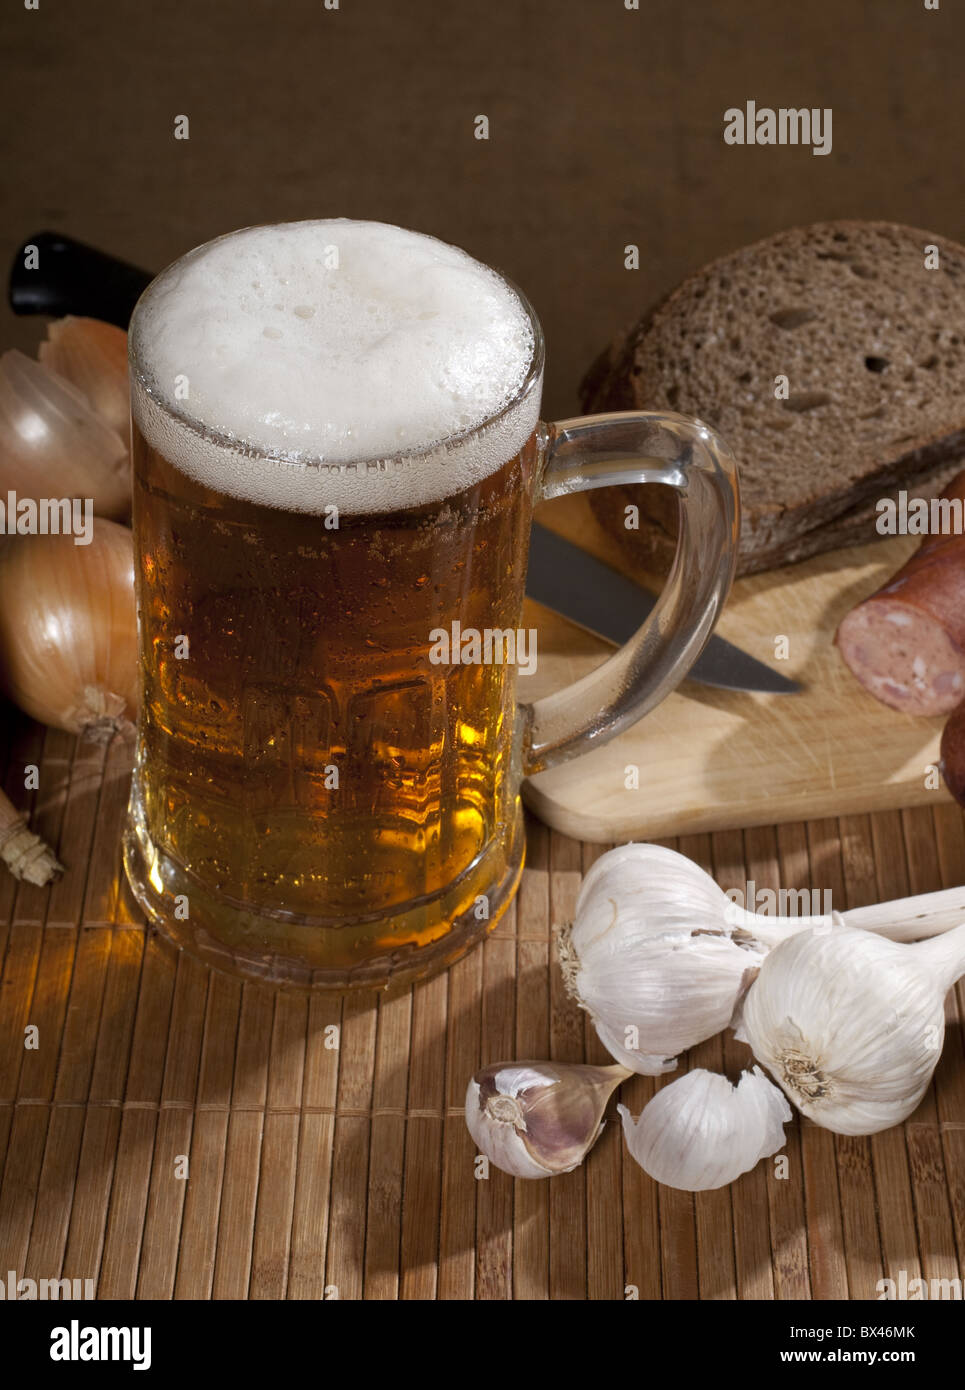 beer with garlic and sausage - Stock Image